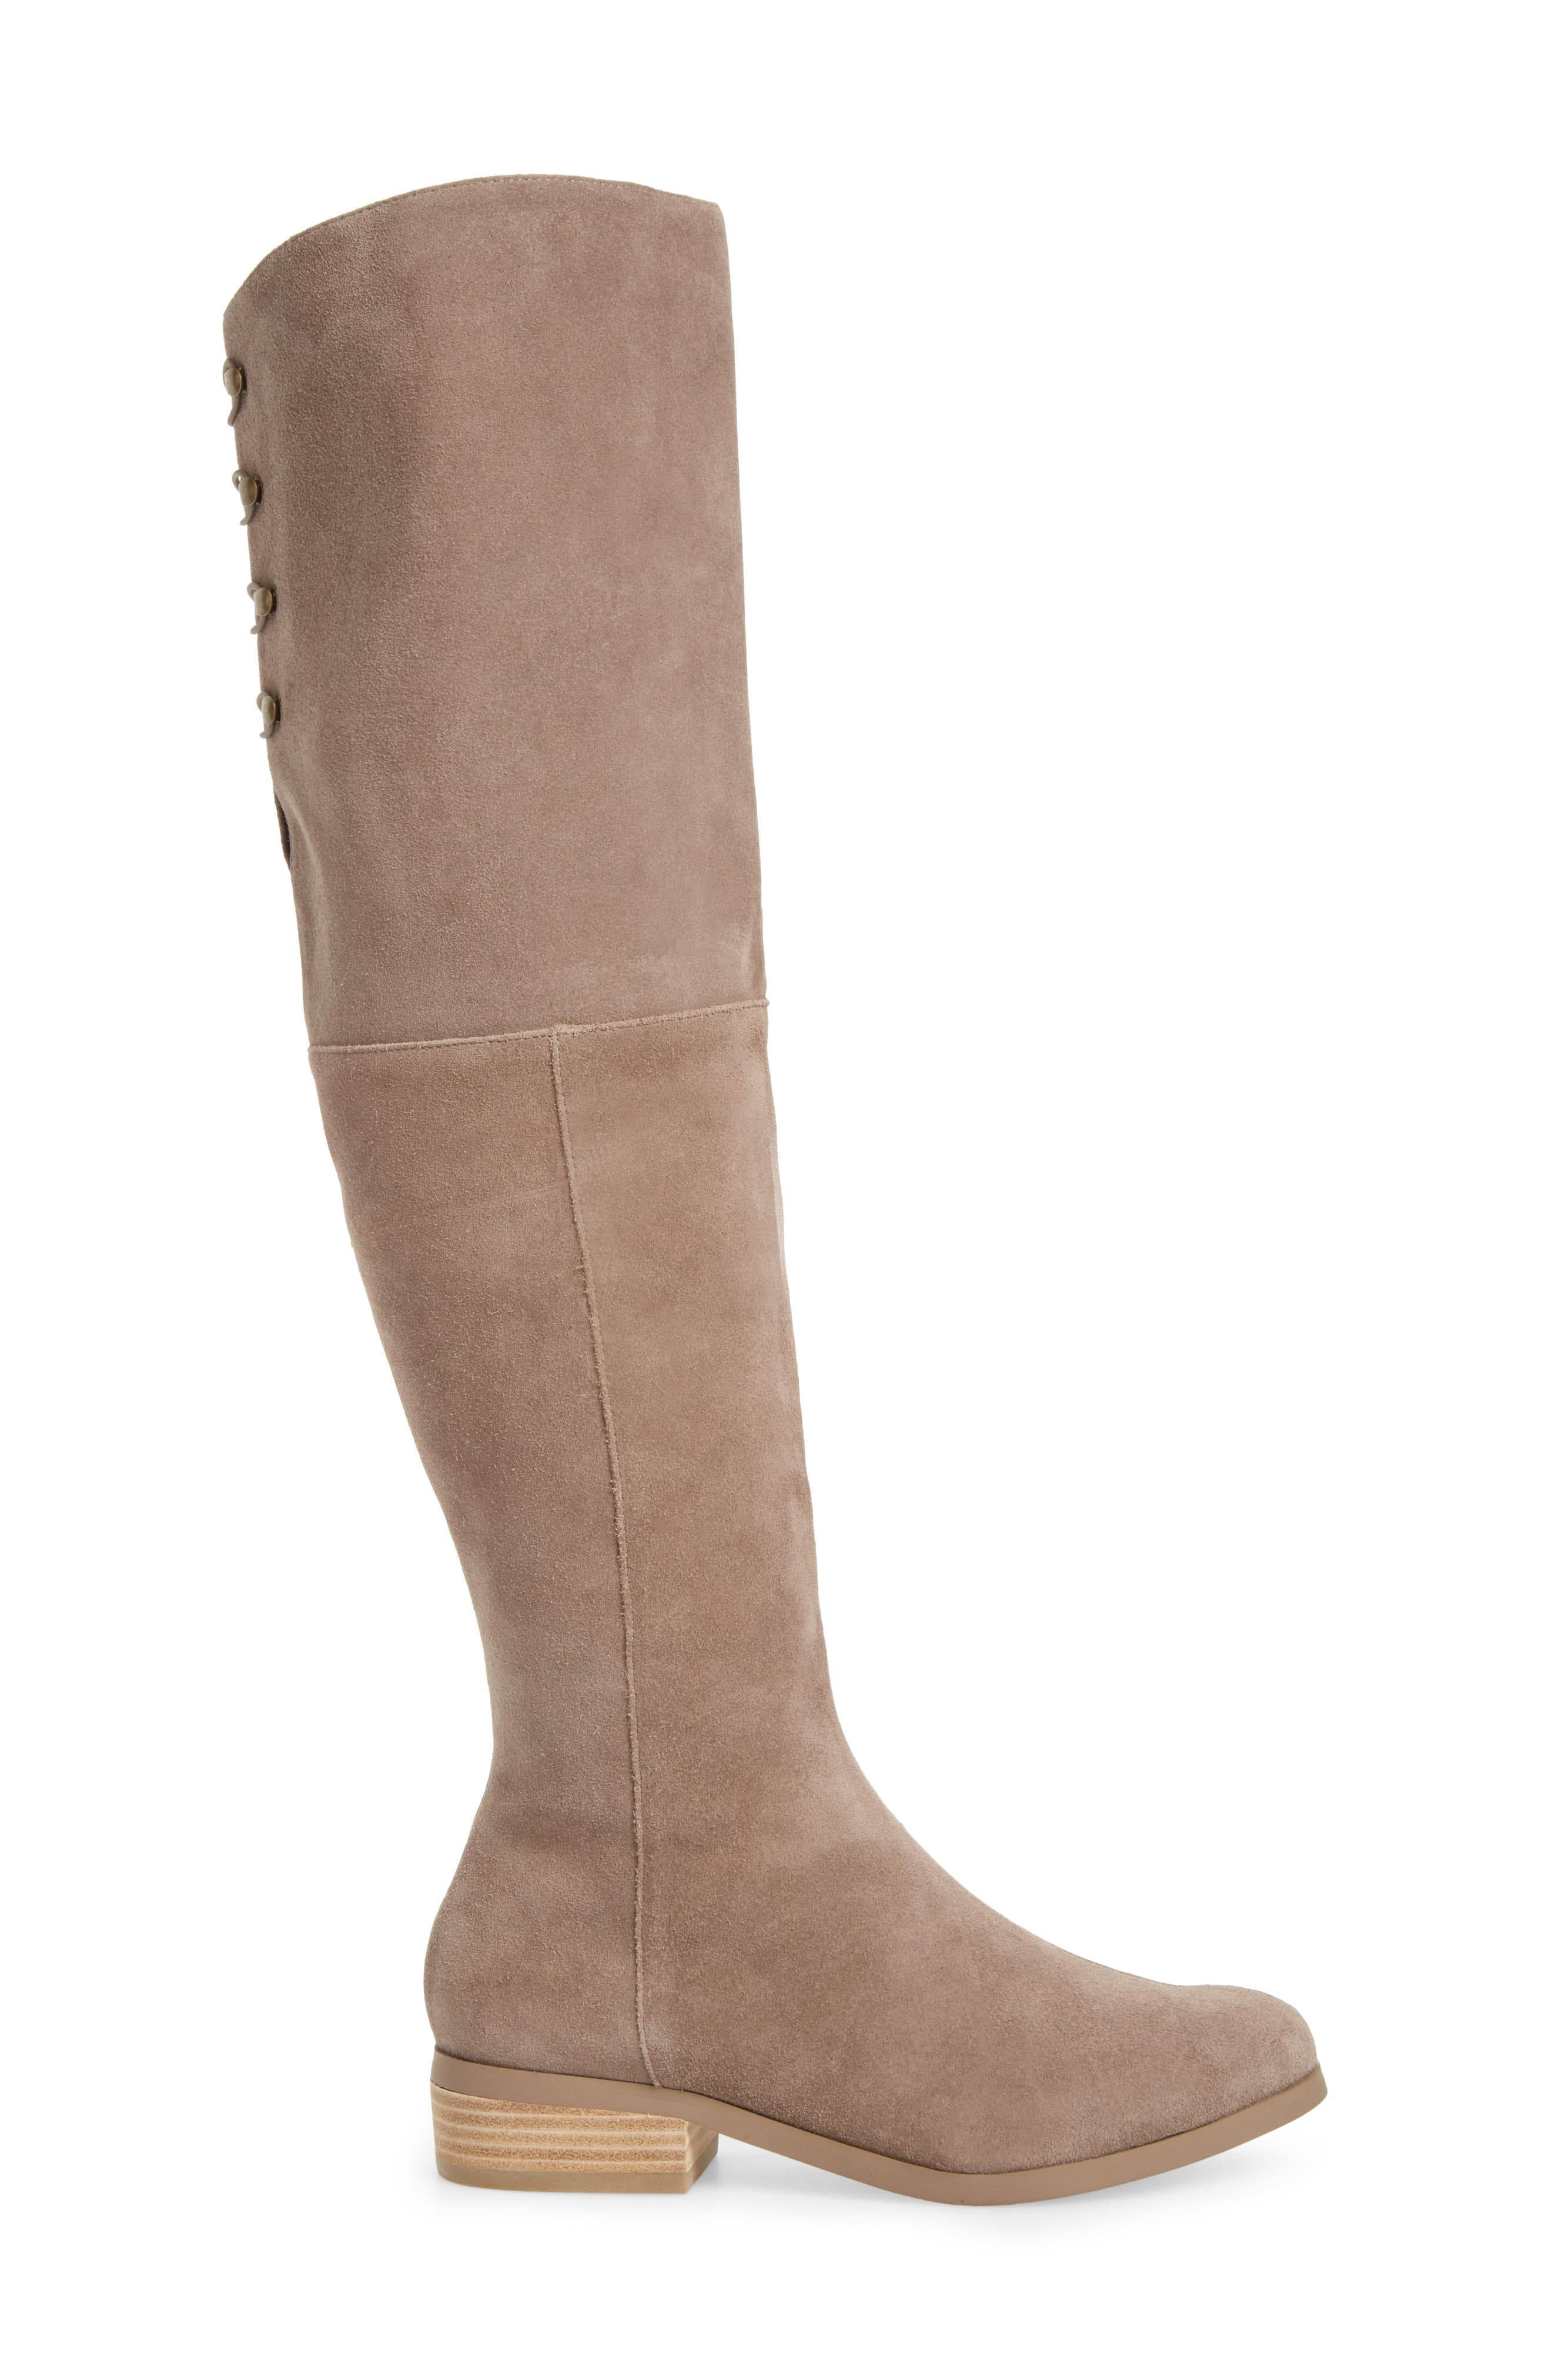 Sonoma Over the Knee Boot,                             Alternate thumbnail 3, color,                             030